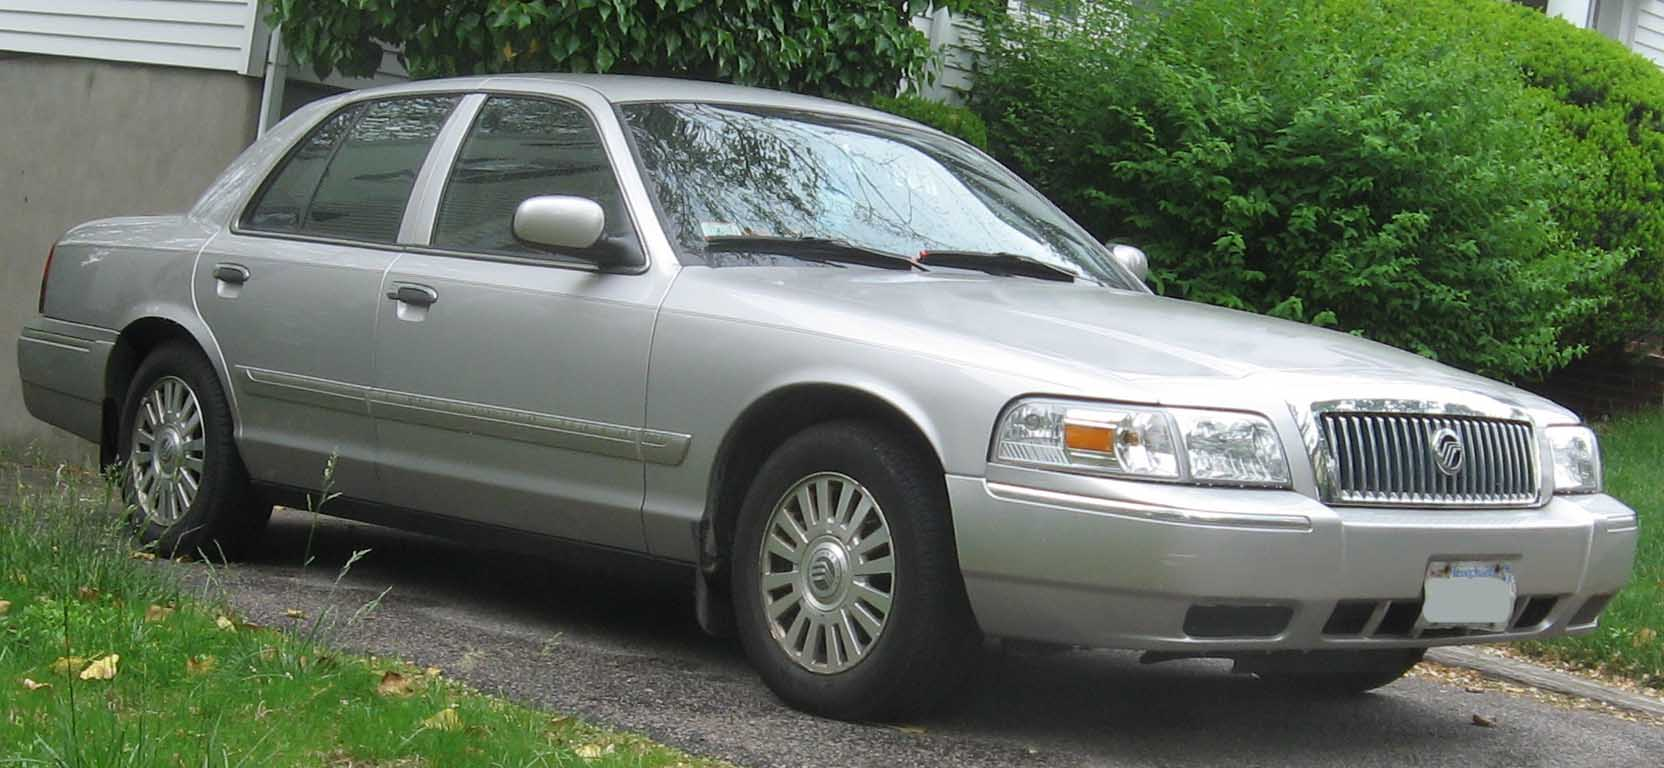 2008 Mercury Grand Marquis #1